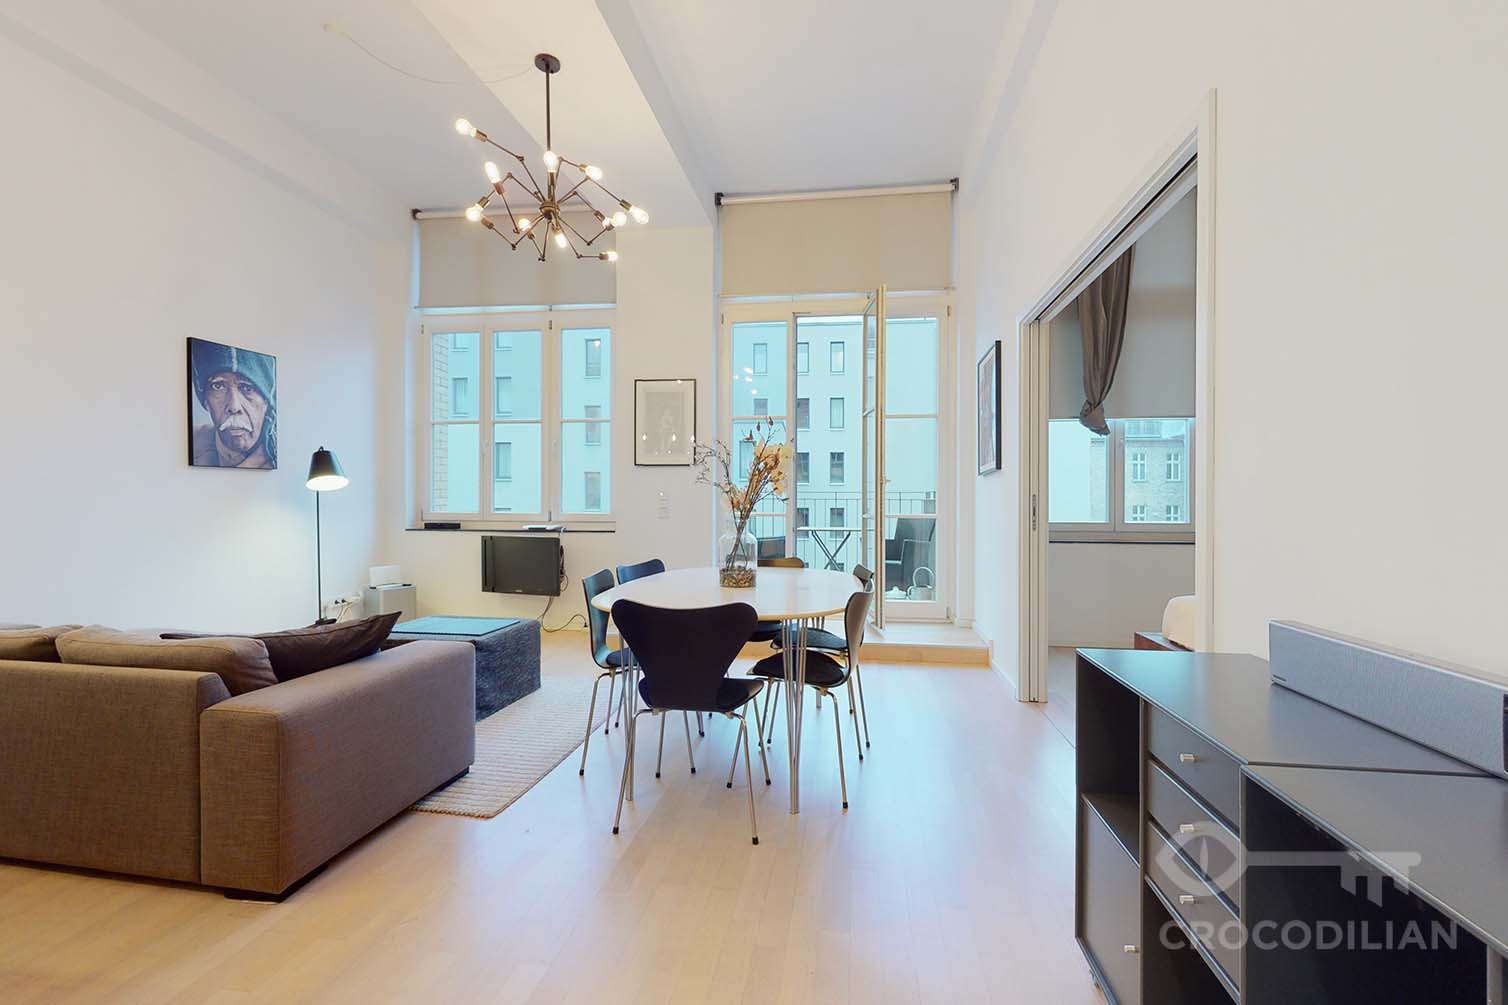 Beautiful loft style 2-room apartment in Mitte